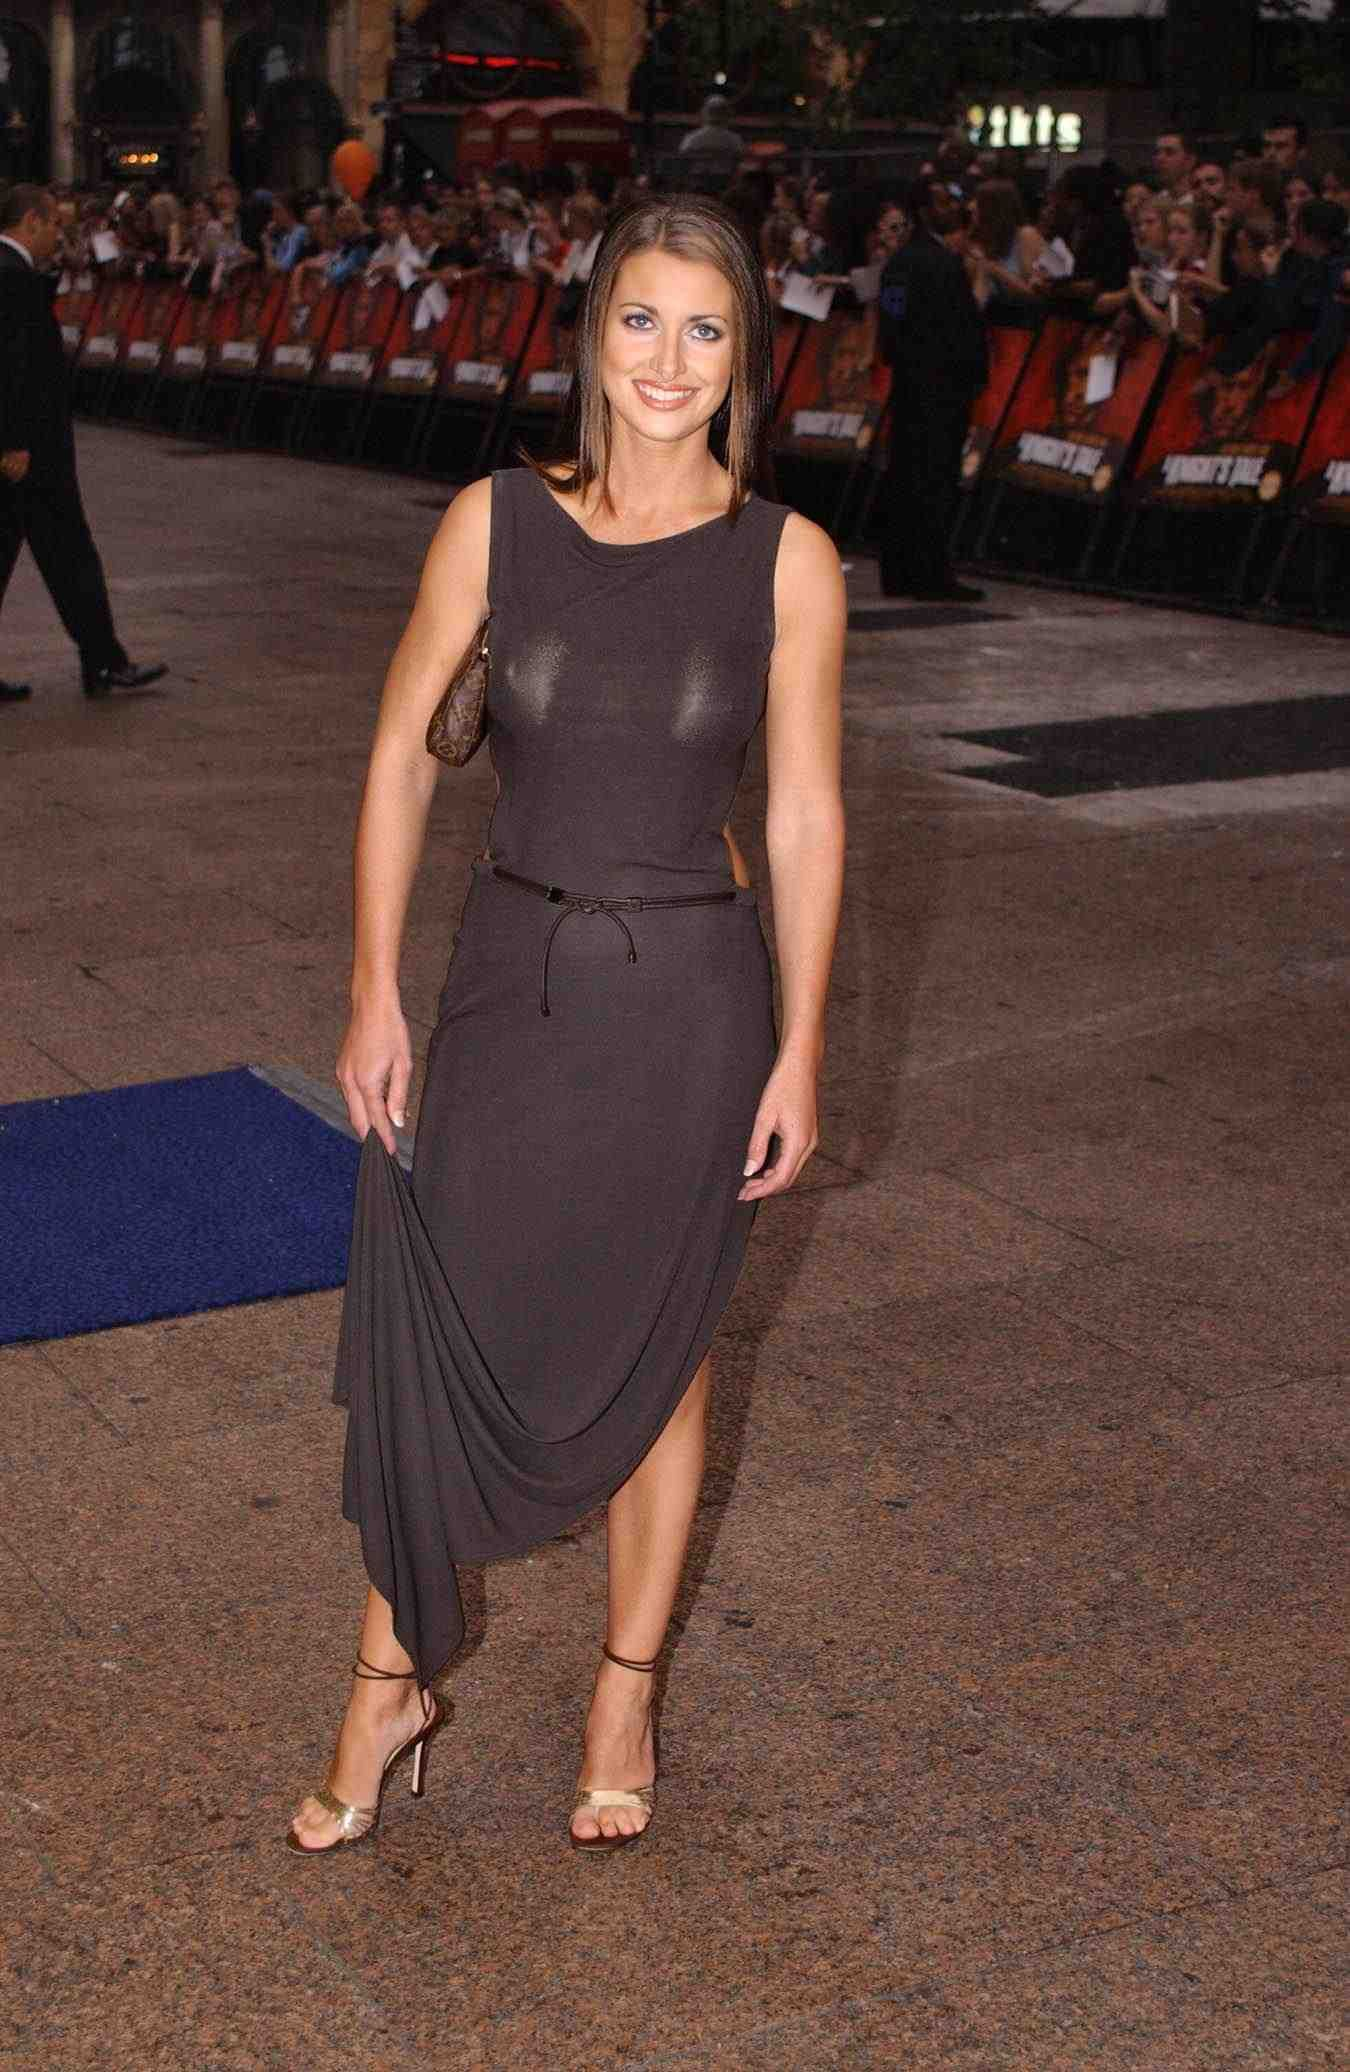 Photos Kirsty Gallacher nudes (52 photo), Leaked